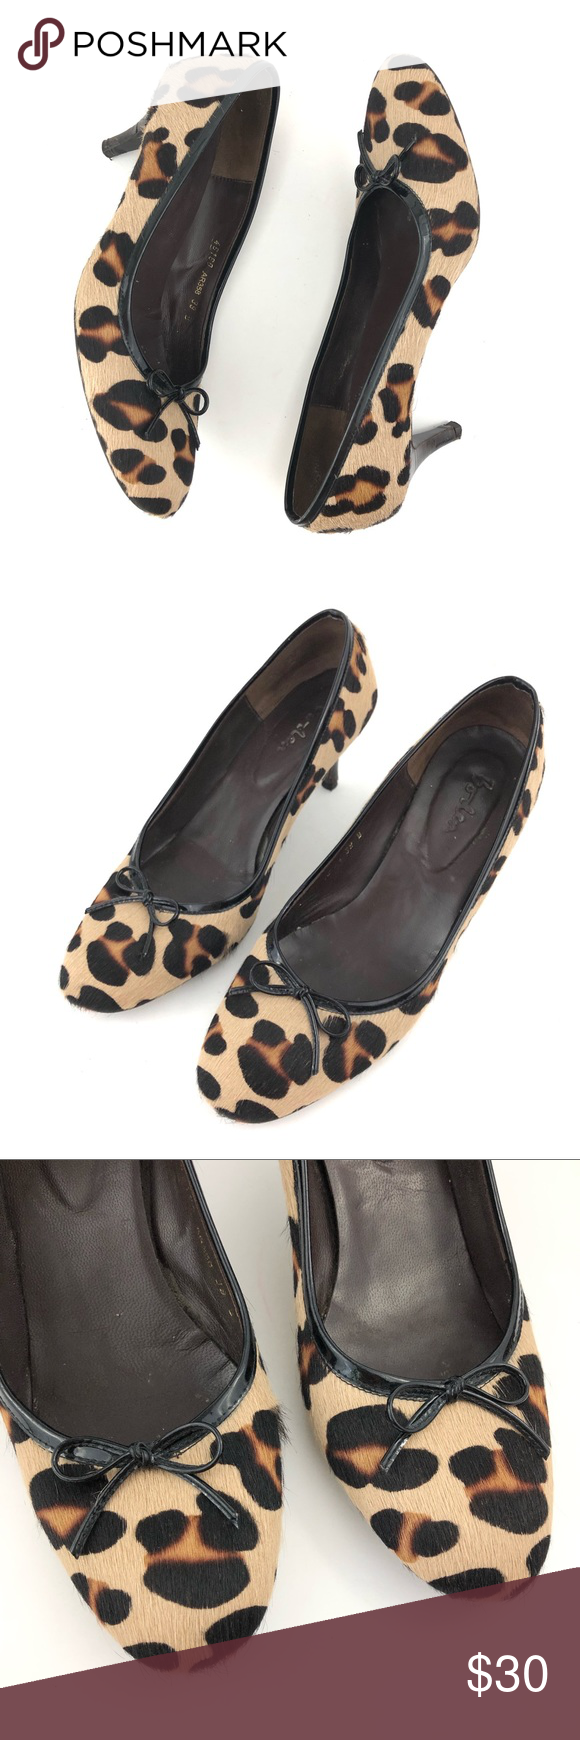 07fcd66bf49e Boden leather leopard kitten heel animal pumps 39 Boden leopard animal print  pumps. Round toes